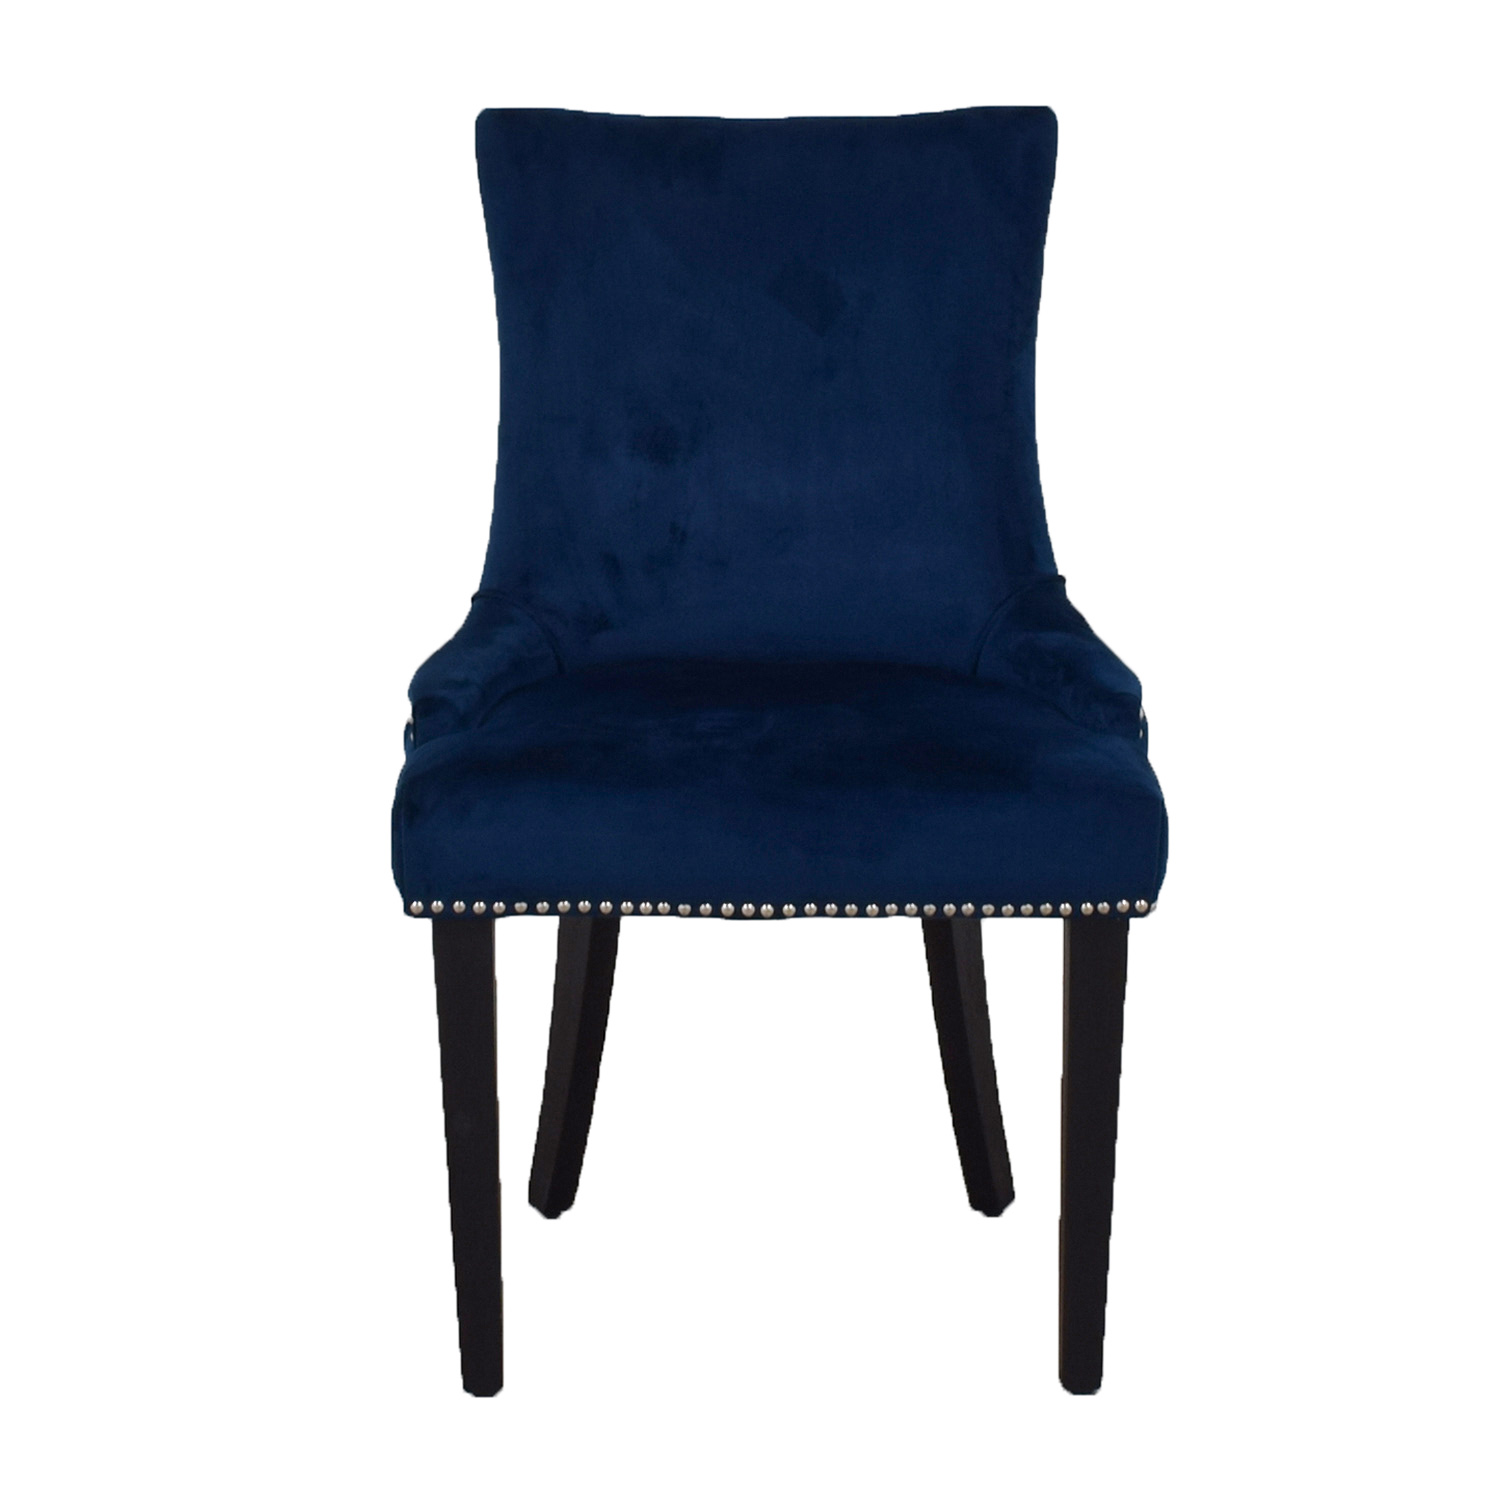 Safavieh Safavieh Blue Nailhead Velvet Accent Chair Sofas